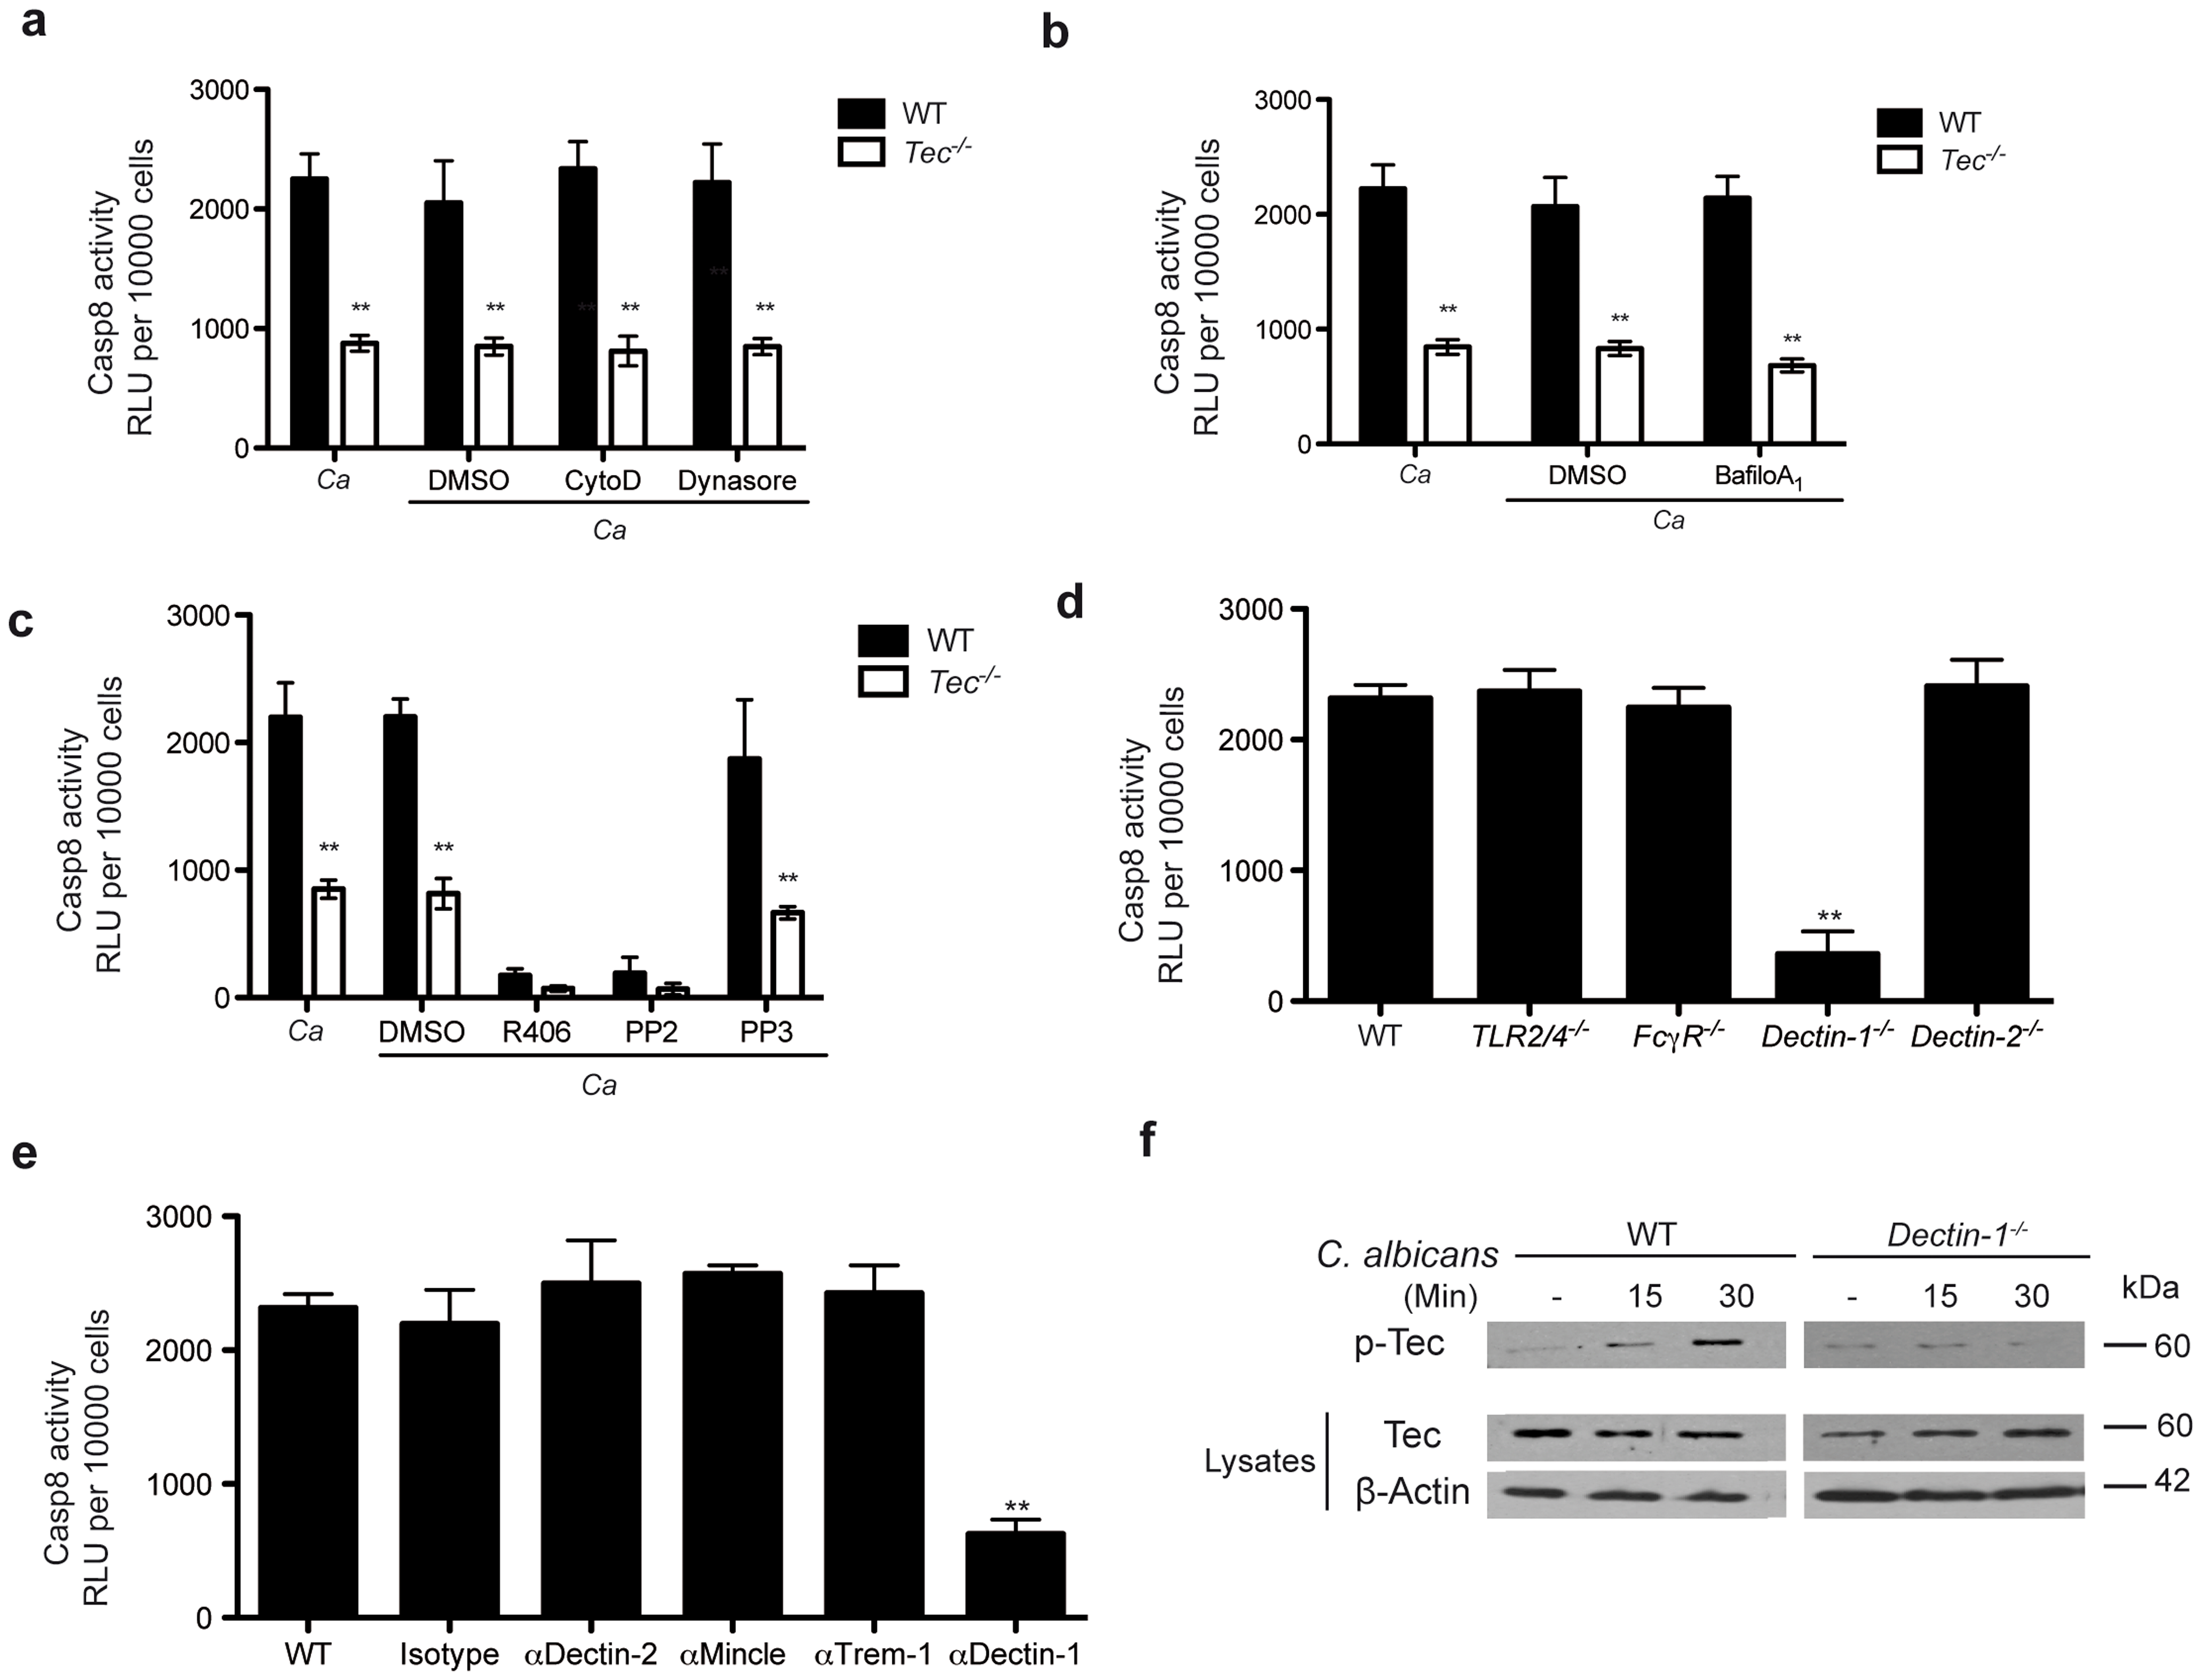 Dectin-1 is required for Tec-dependent caspase-8 activation.